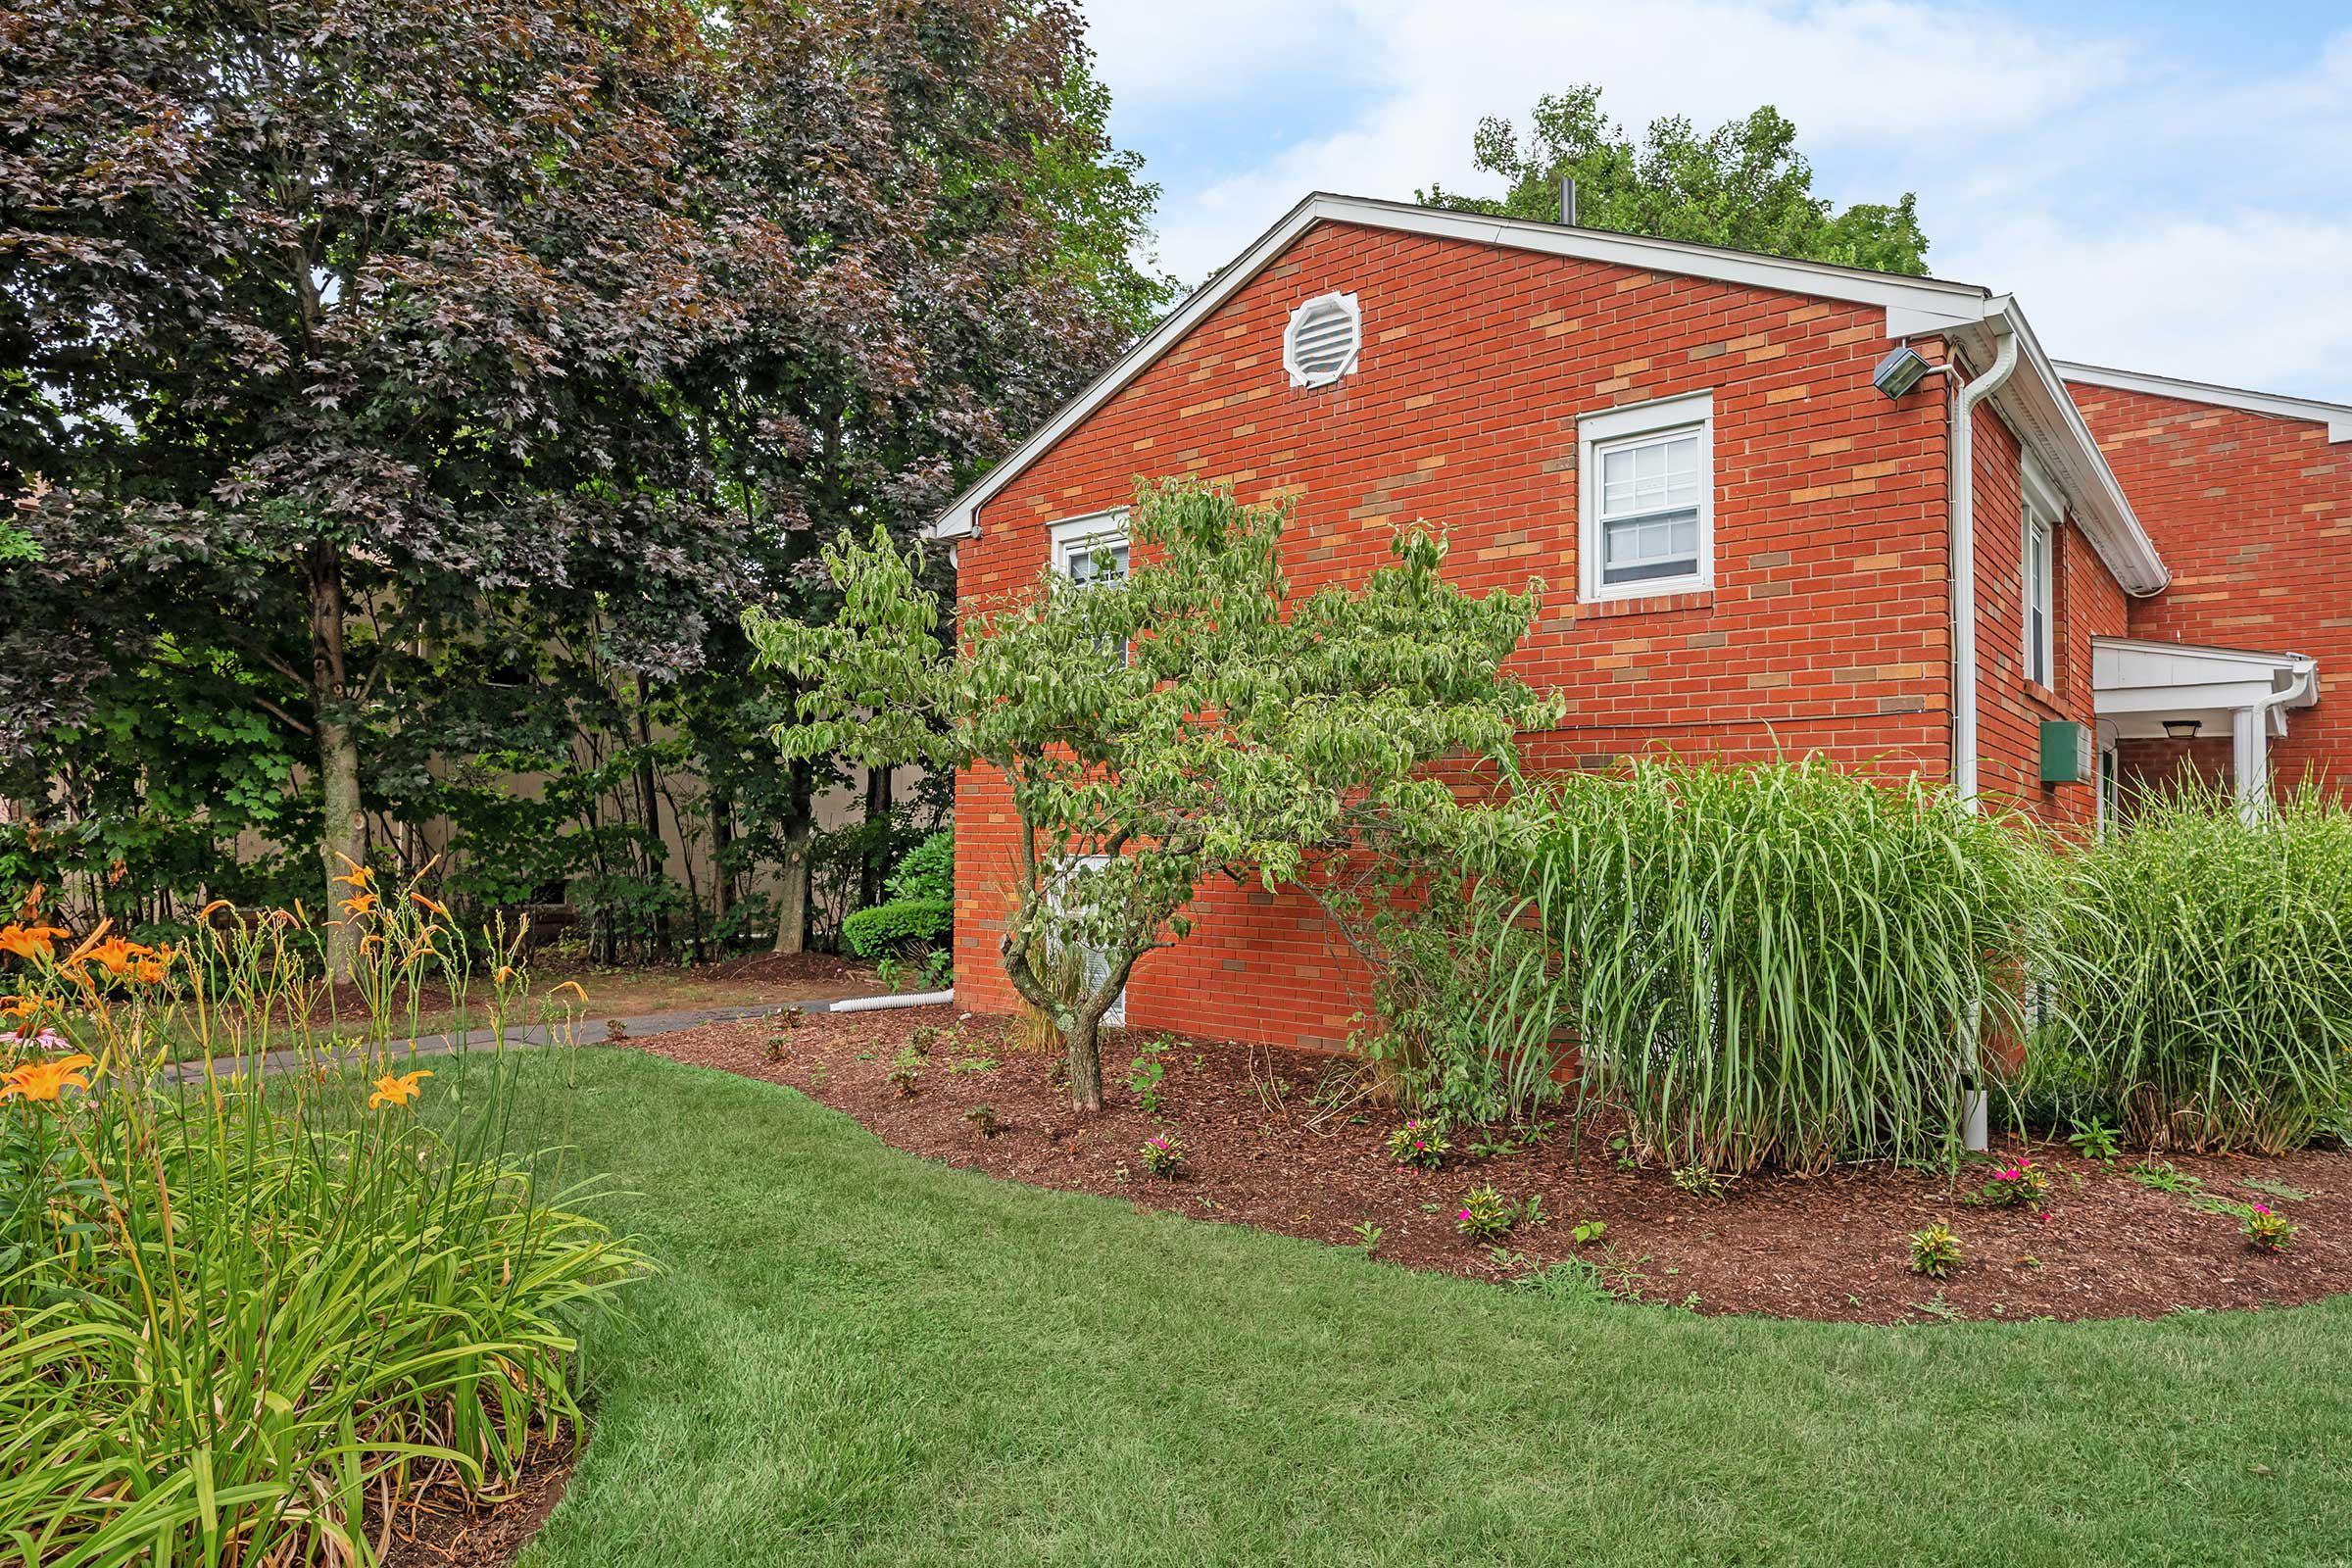 a large brick building with grass in front of a house